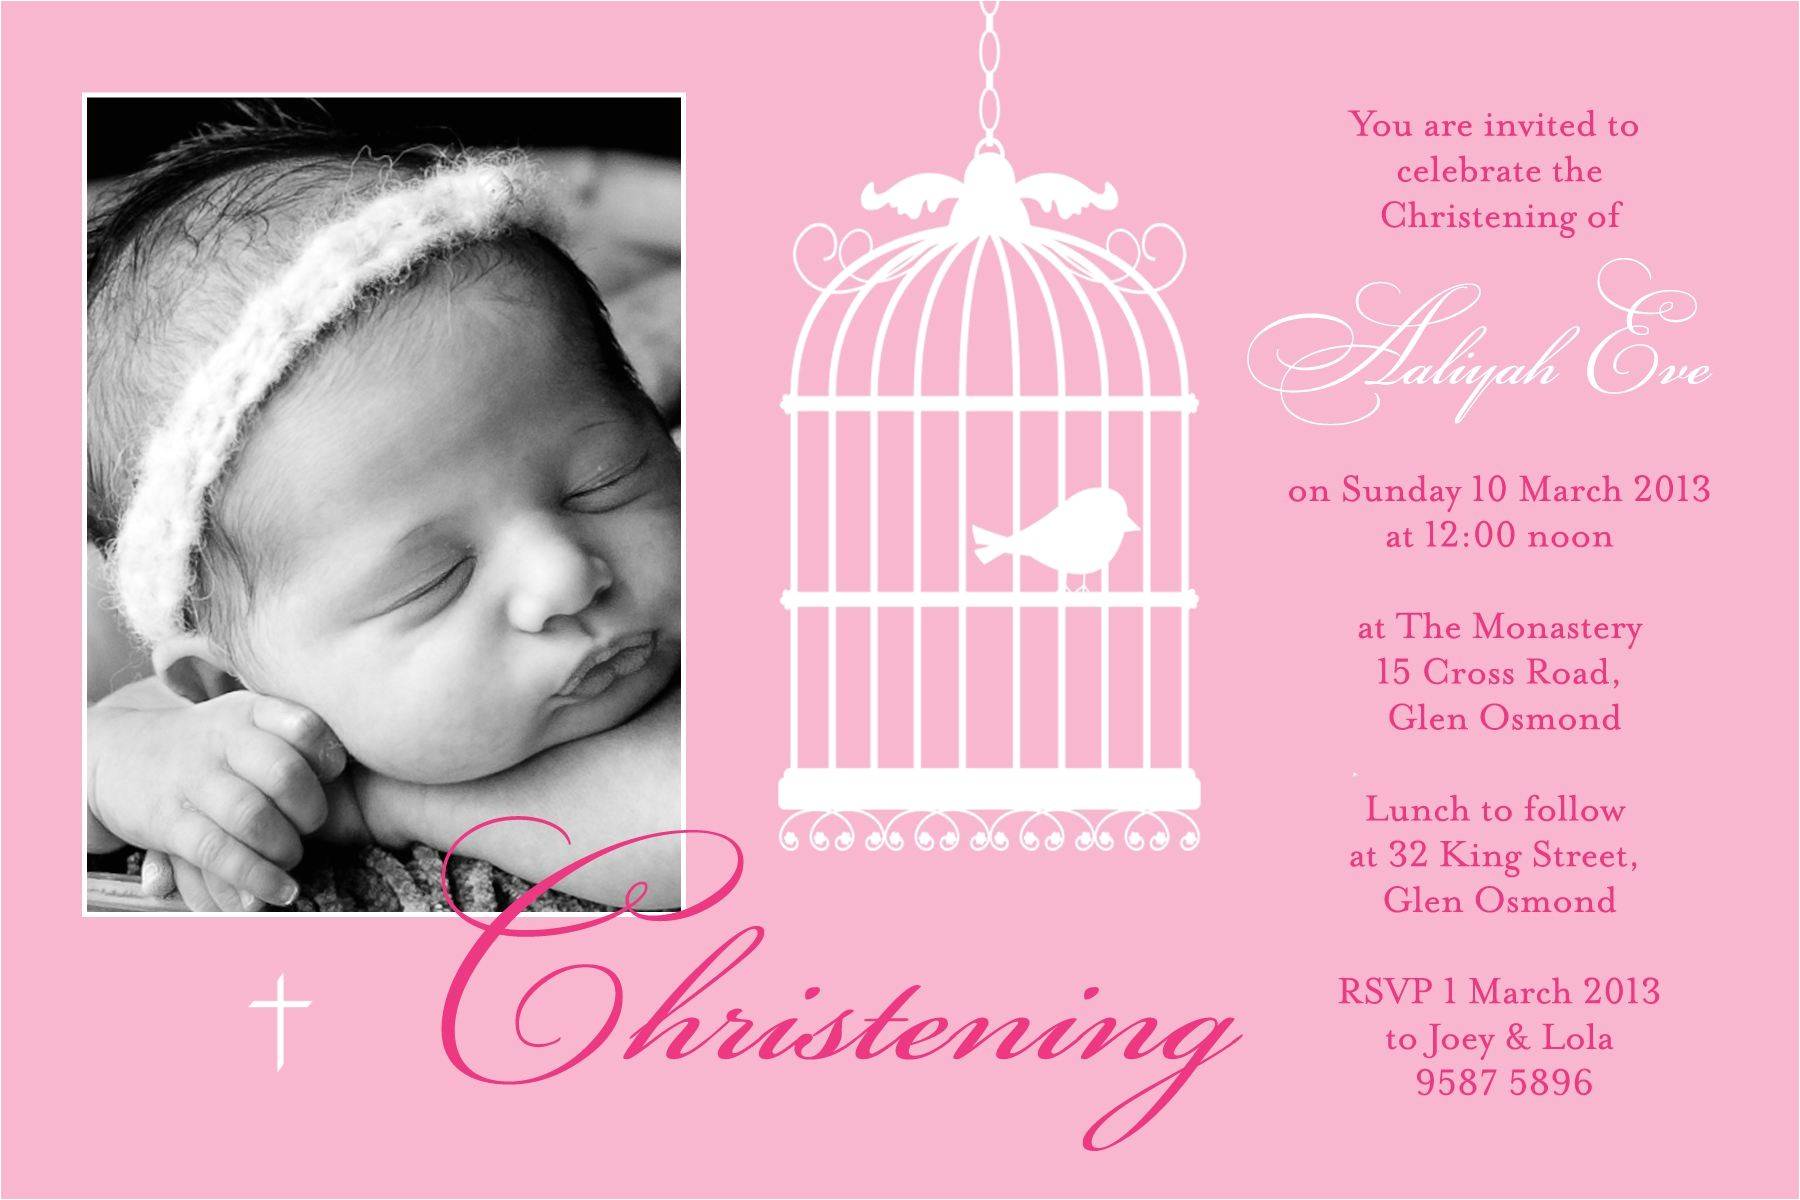 Baptismal Invitation for Baby Girl Baptism Invitations for Girl Free Christening Invitation